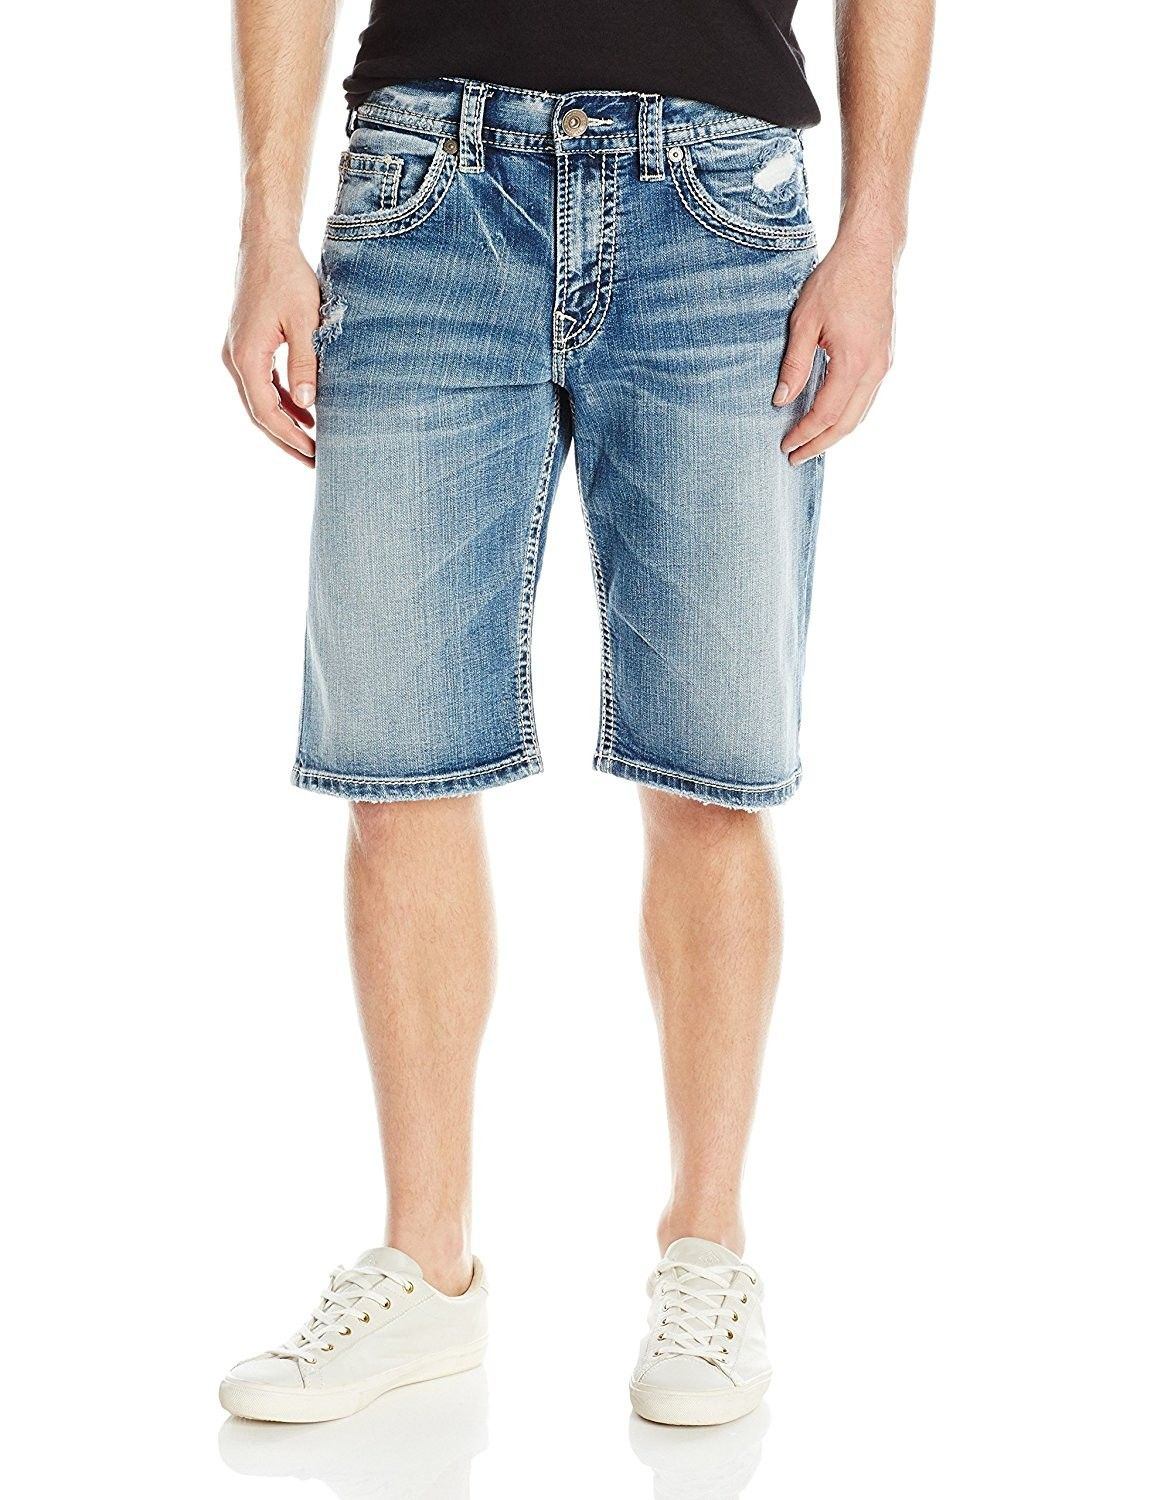 4b1e46c4 Silver Jeans Co. Men's Gordie Loose Fit Jean Shorts - Indigo -  CV12OC2C0MW,Men's Clothing, Shorts #Men #fashion #clothing #outfits #gifts  #Shorts